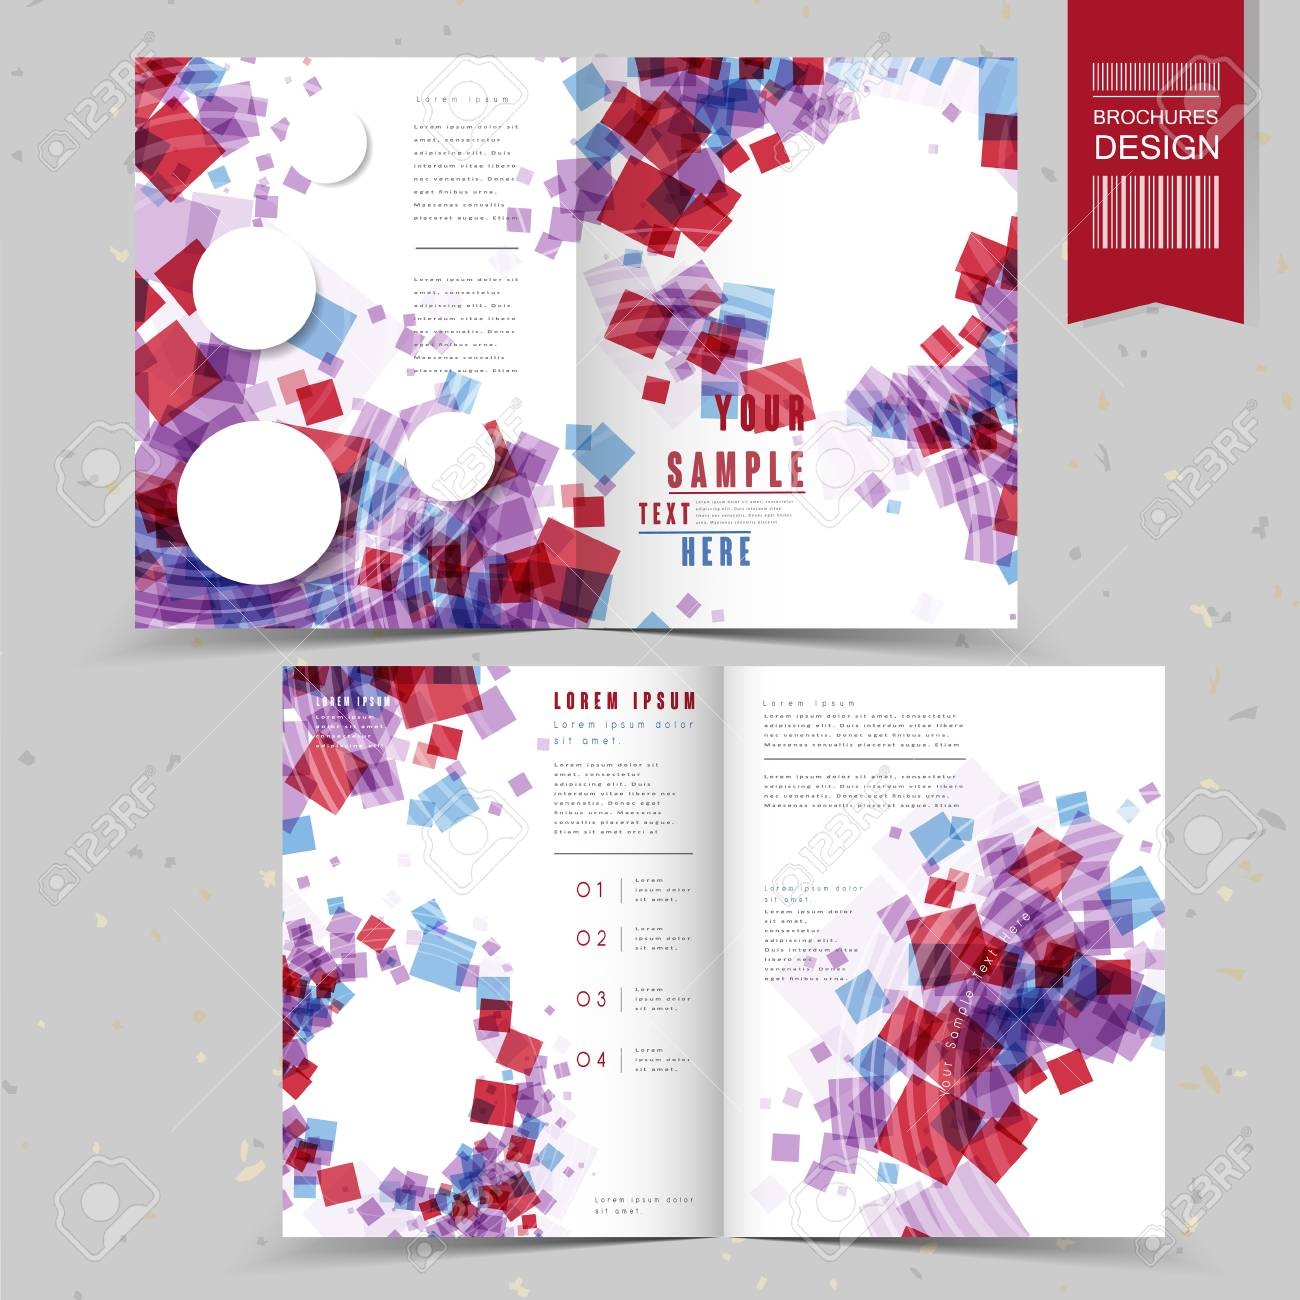 lovely half fold brochure template design with translucent squares in red and blue color stock